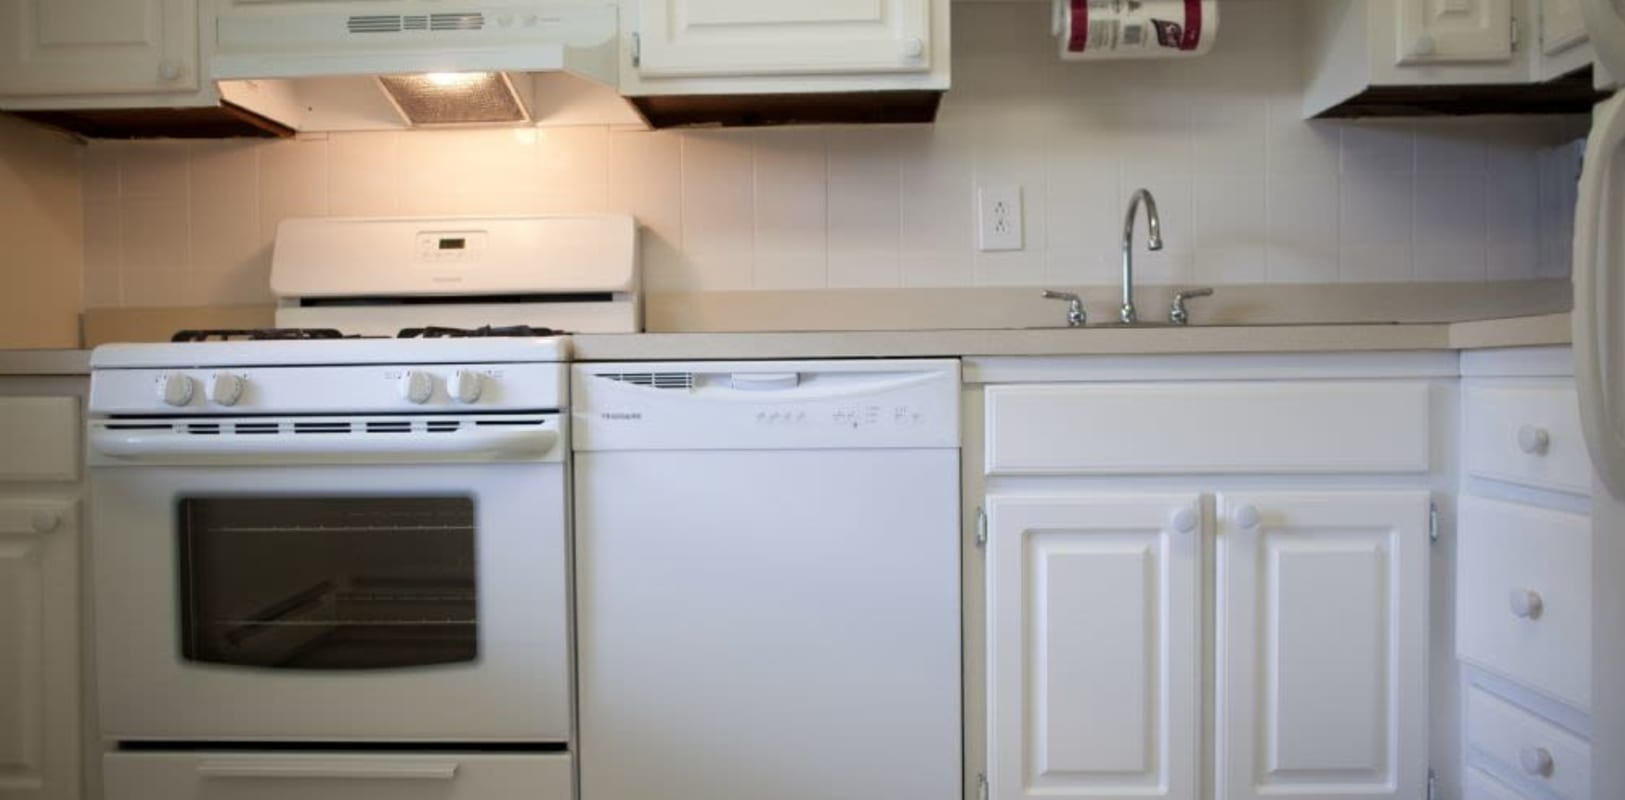 Kitchen with off white colors at Wynbrook West Apartments in East Windsor, New Jersey